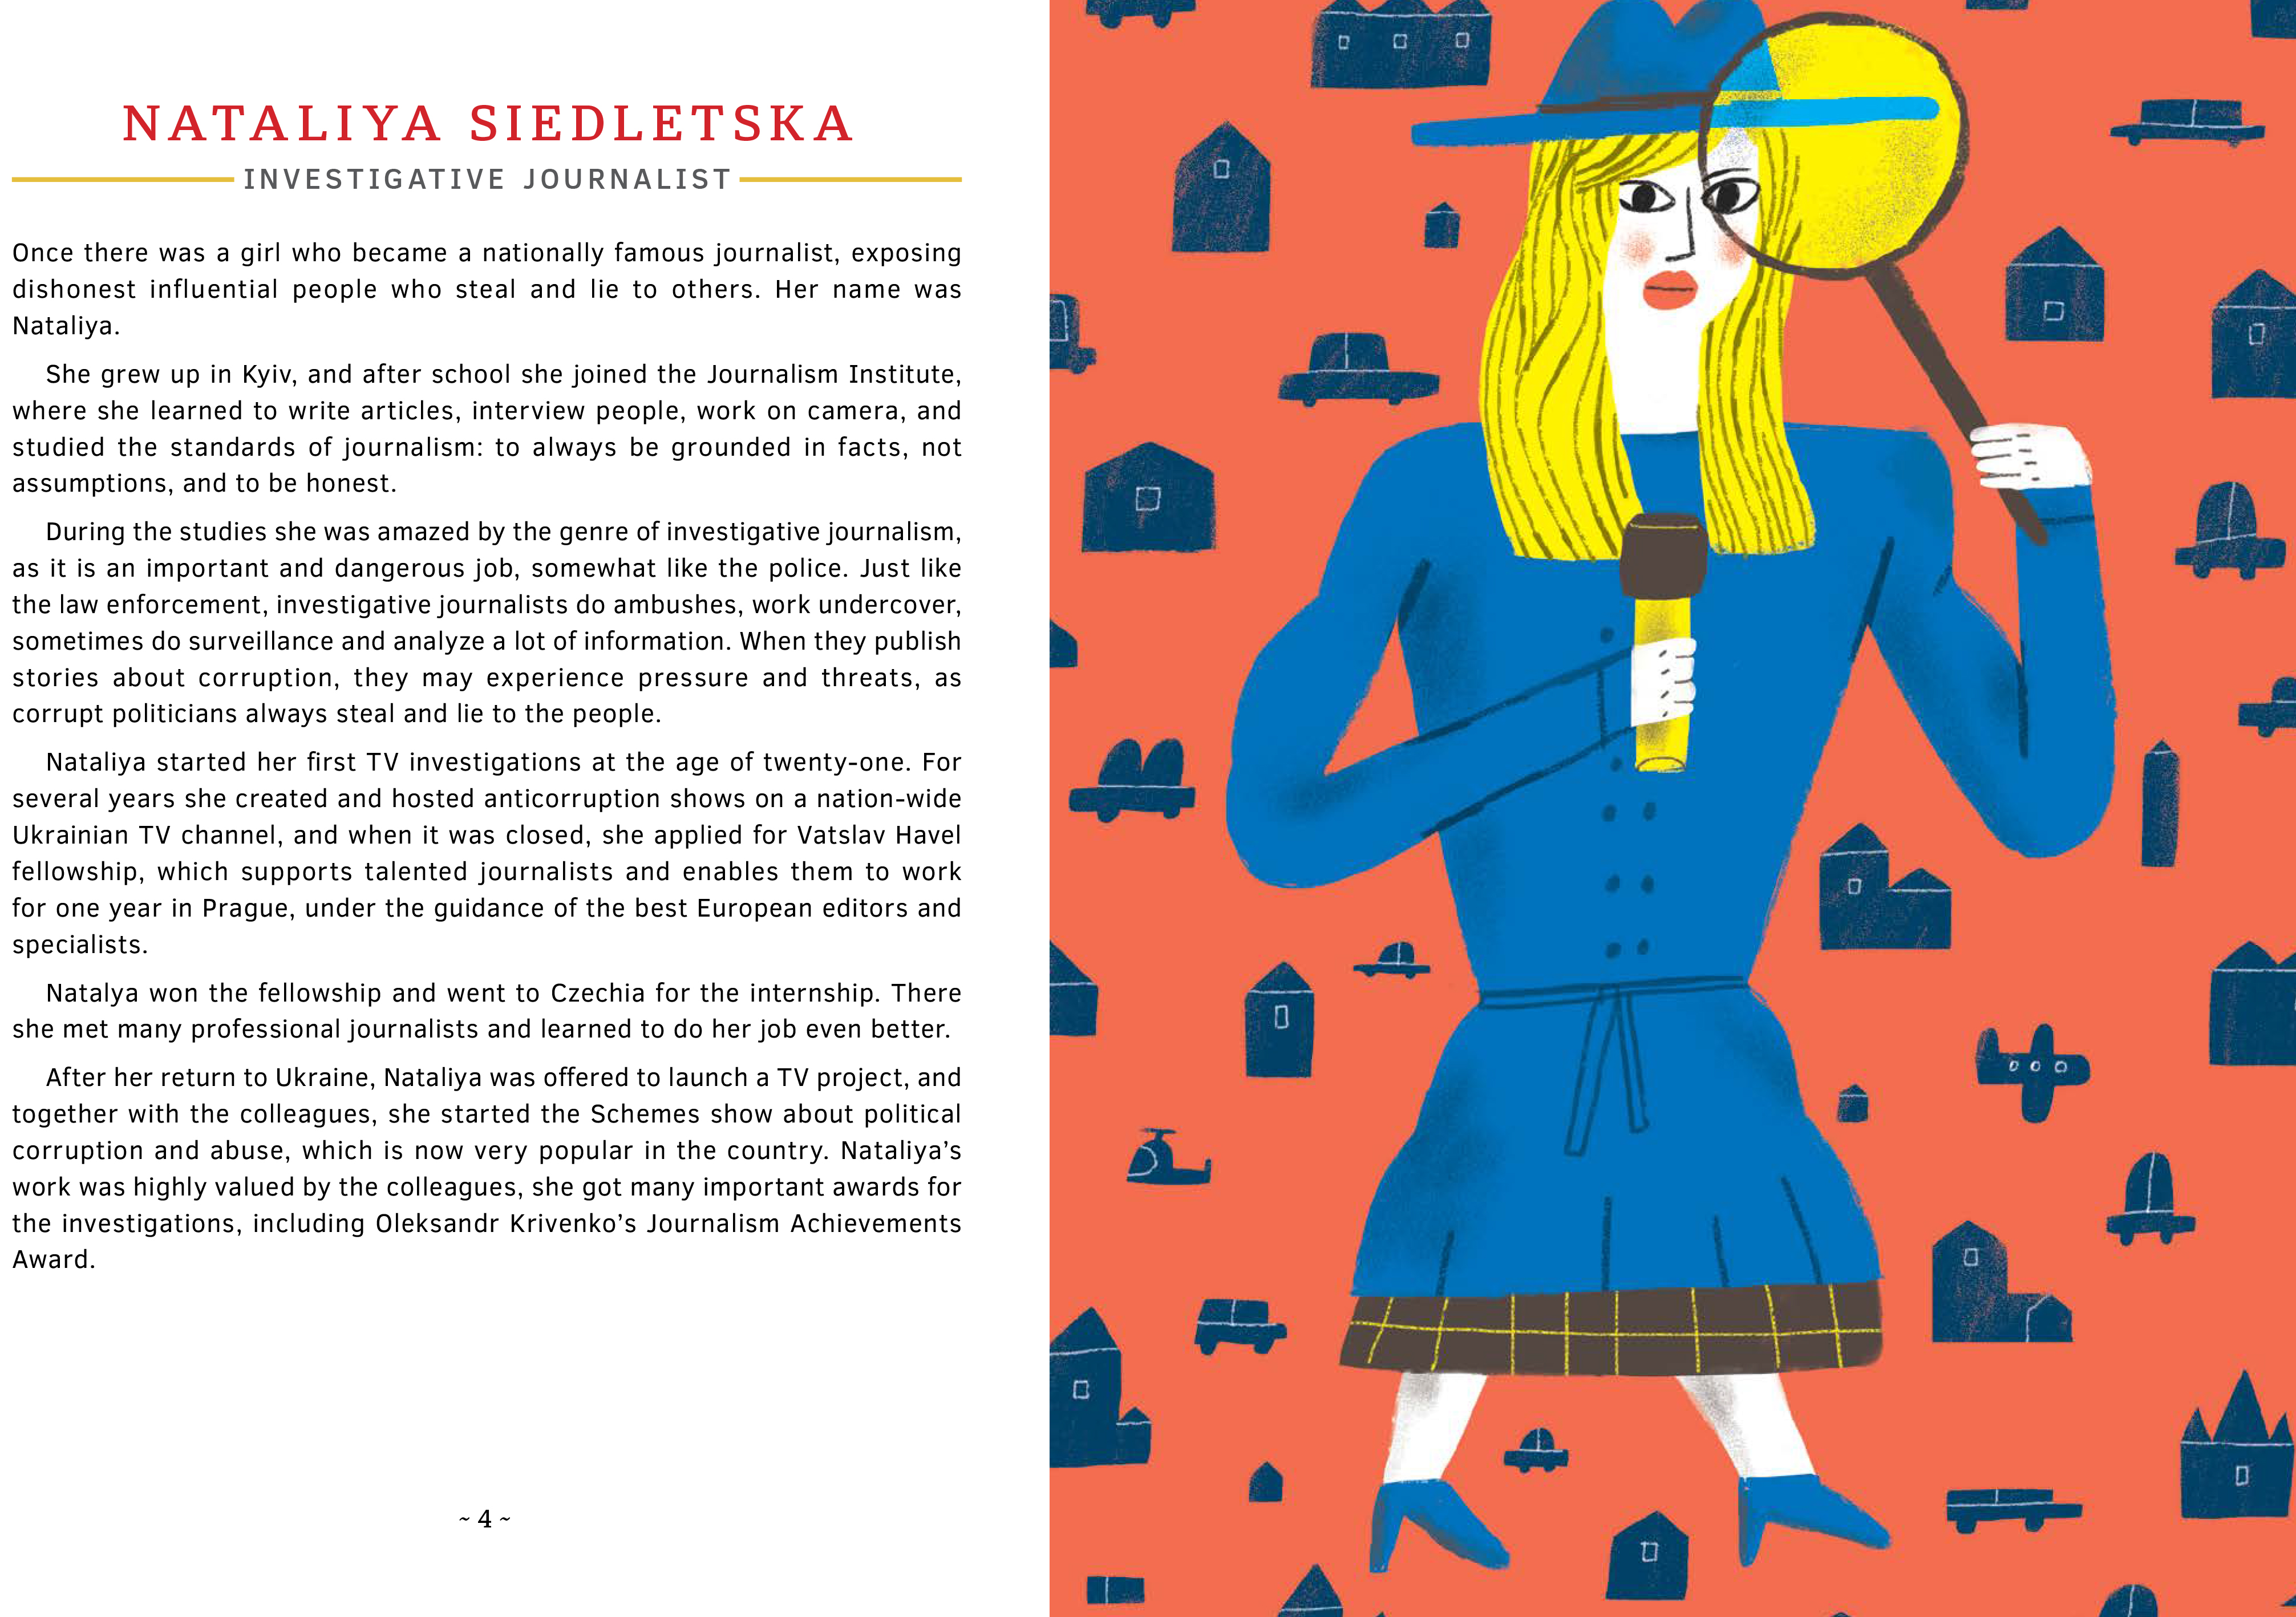 Text and illustration for Nataliya Siedletska